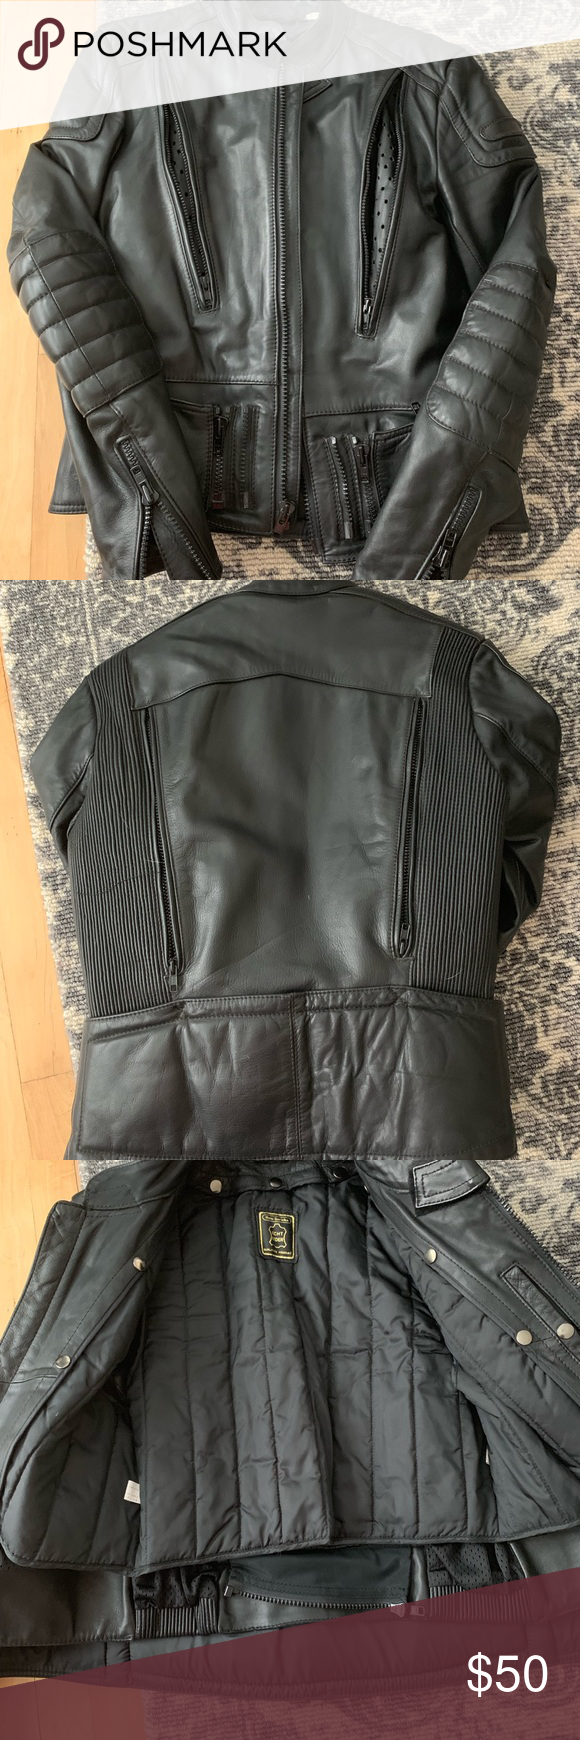 Men's leather jacket Leather jacket, Jackets, Leather